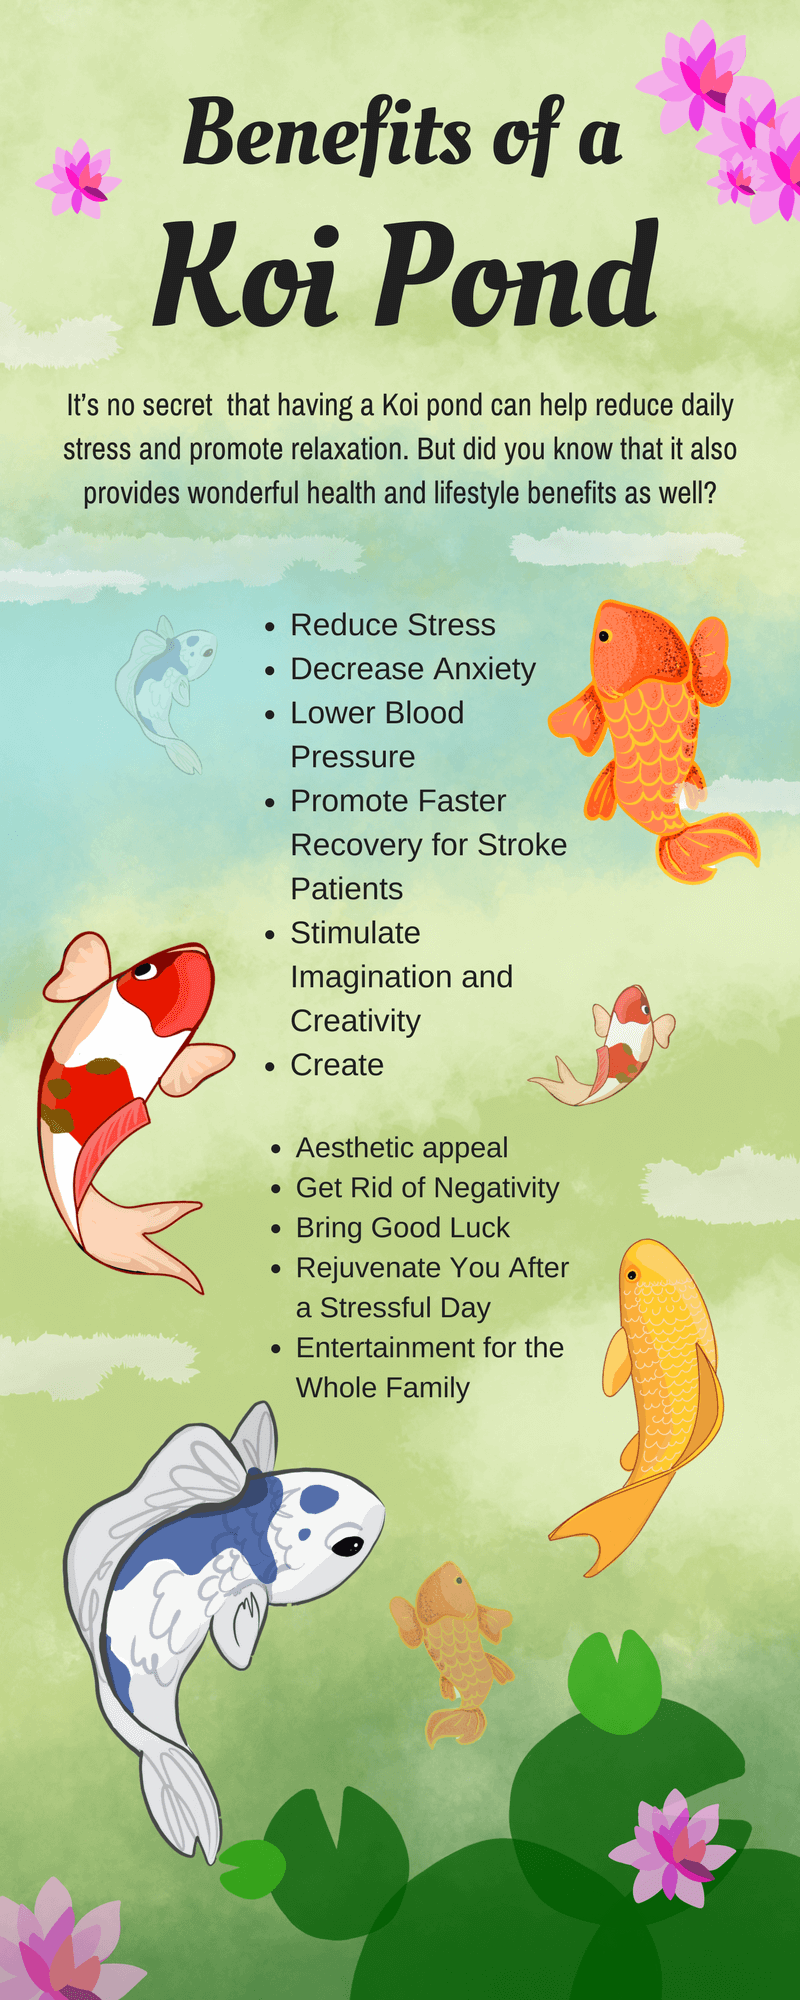 koi diseases diagnosis and recommended treatments of koi fish ...